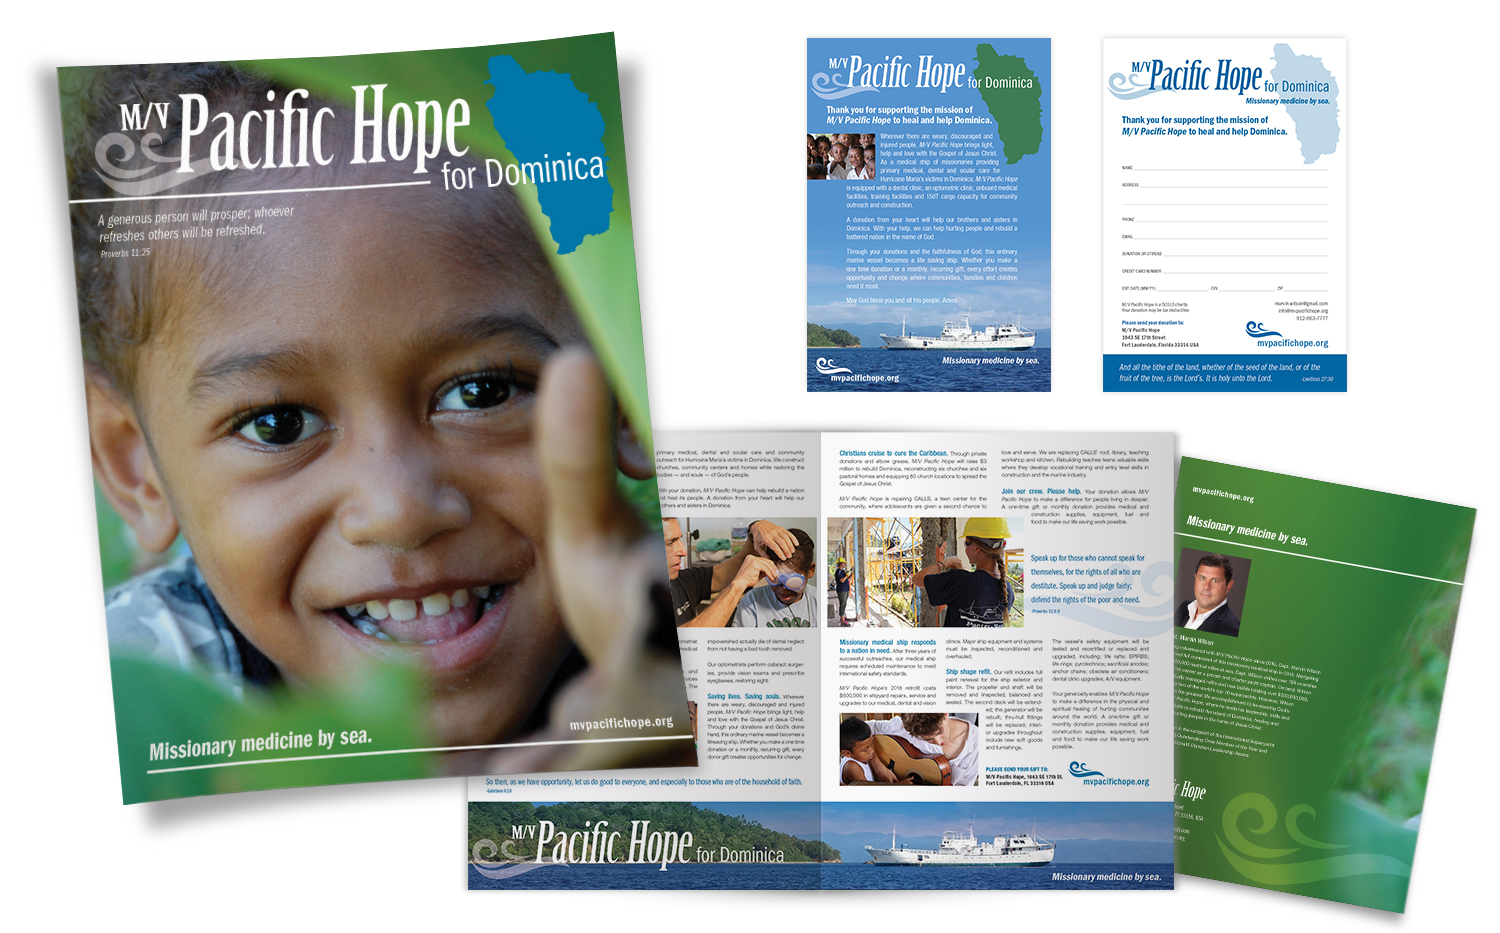 Pacific-Hope_booklet-and-cover_mockup.jpg